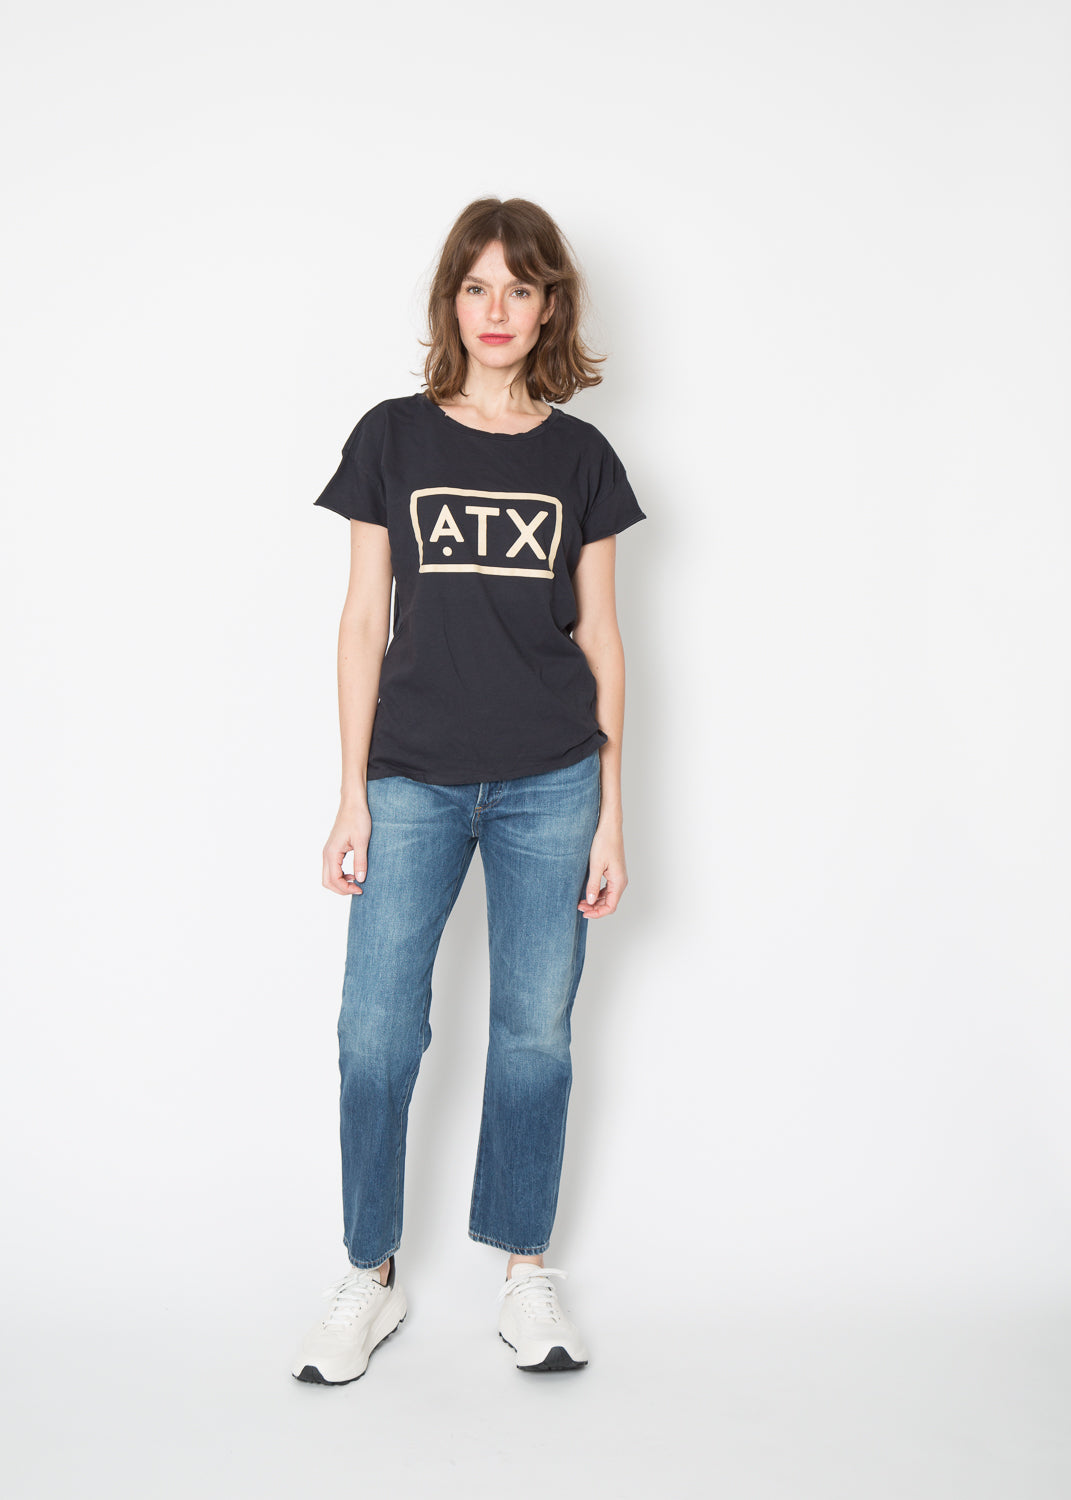 Good Company ATX Tee, Black